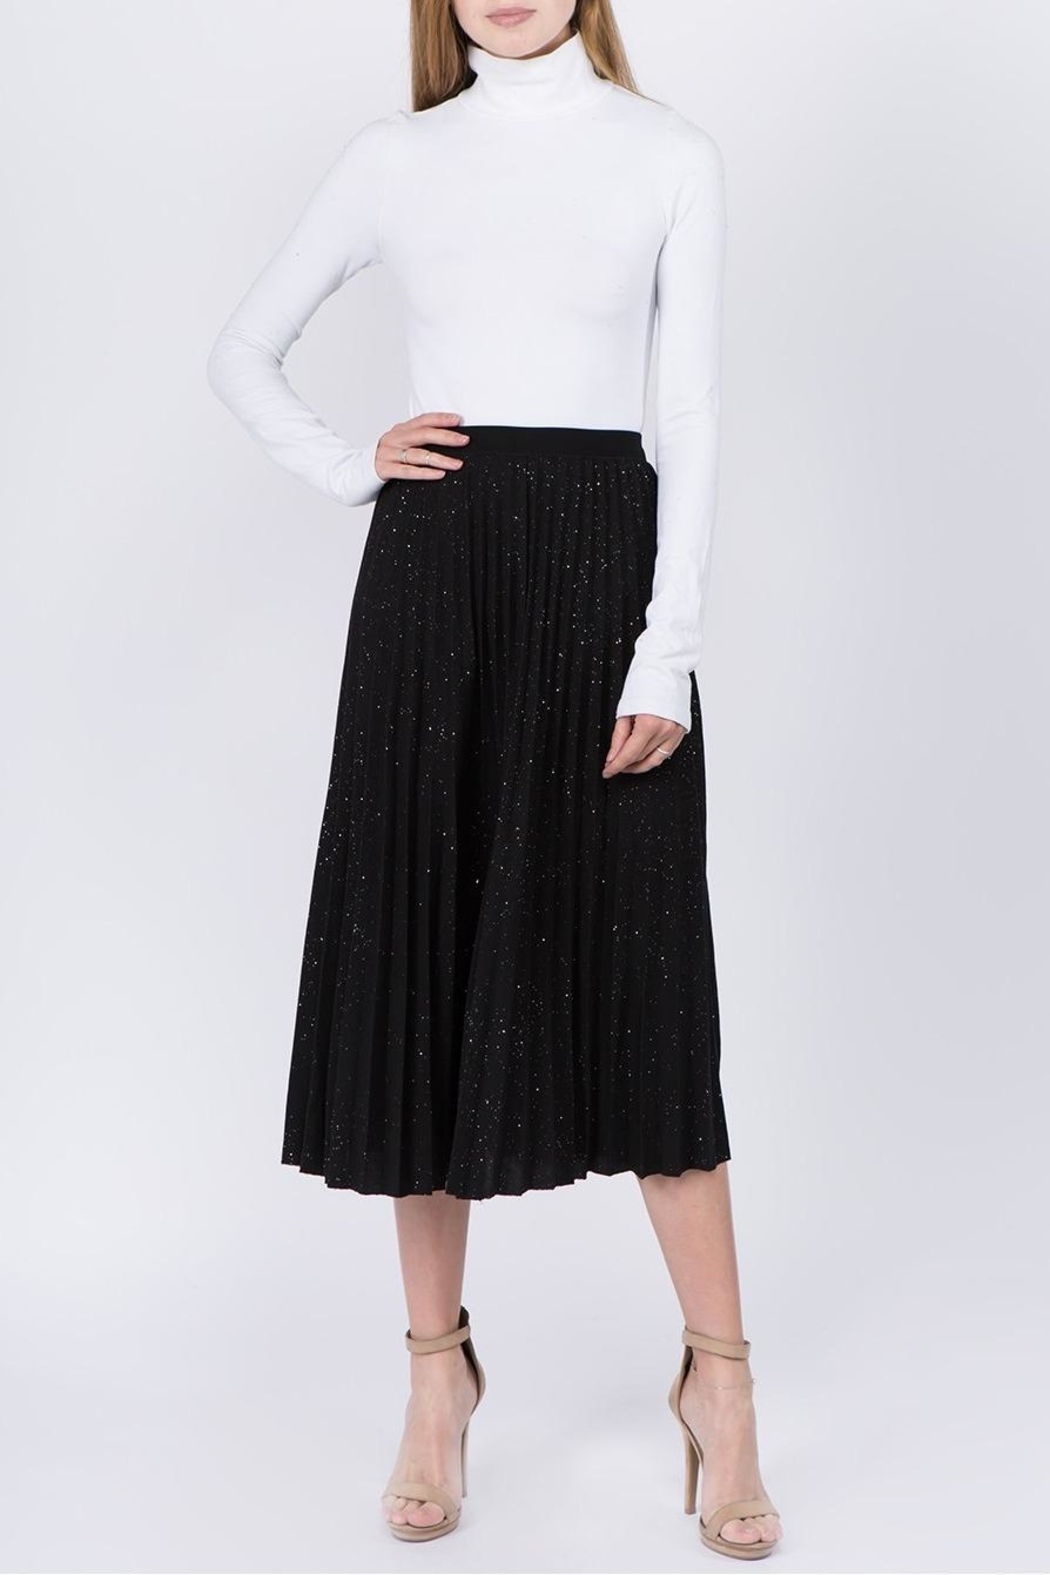 Tabac Sparkly-Skies Pleated Skirt - Main Image